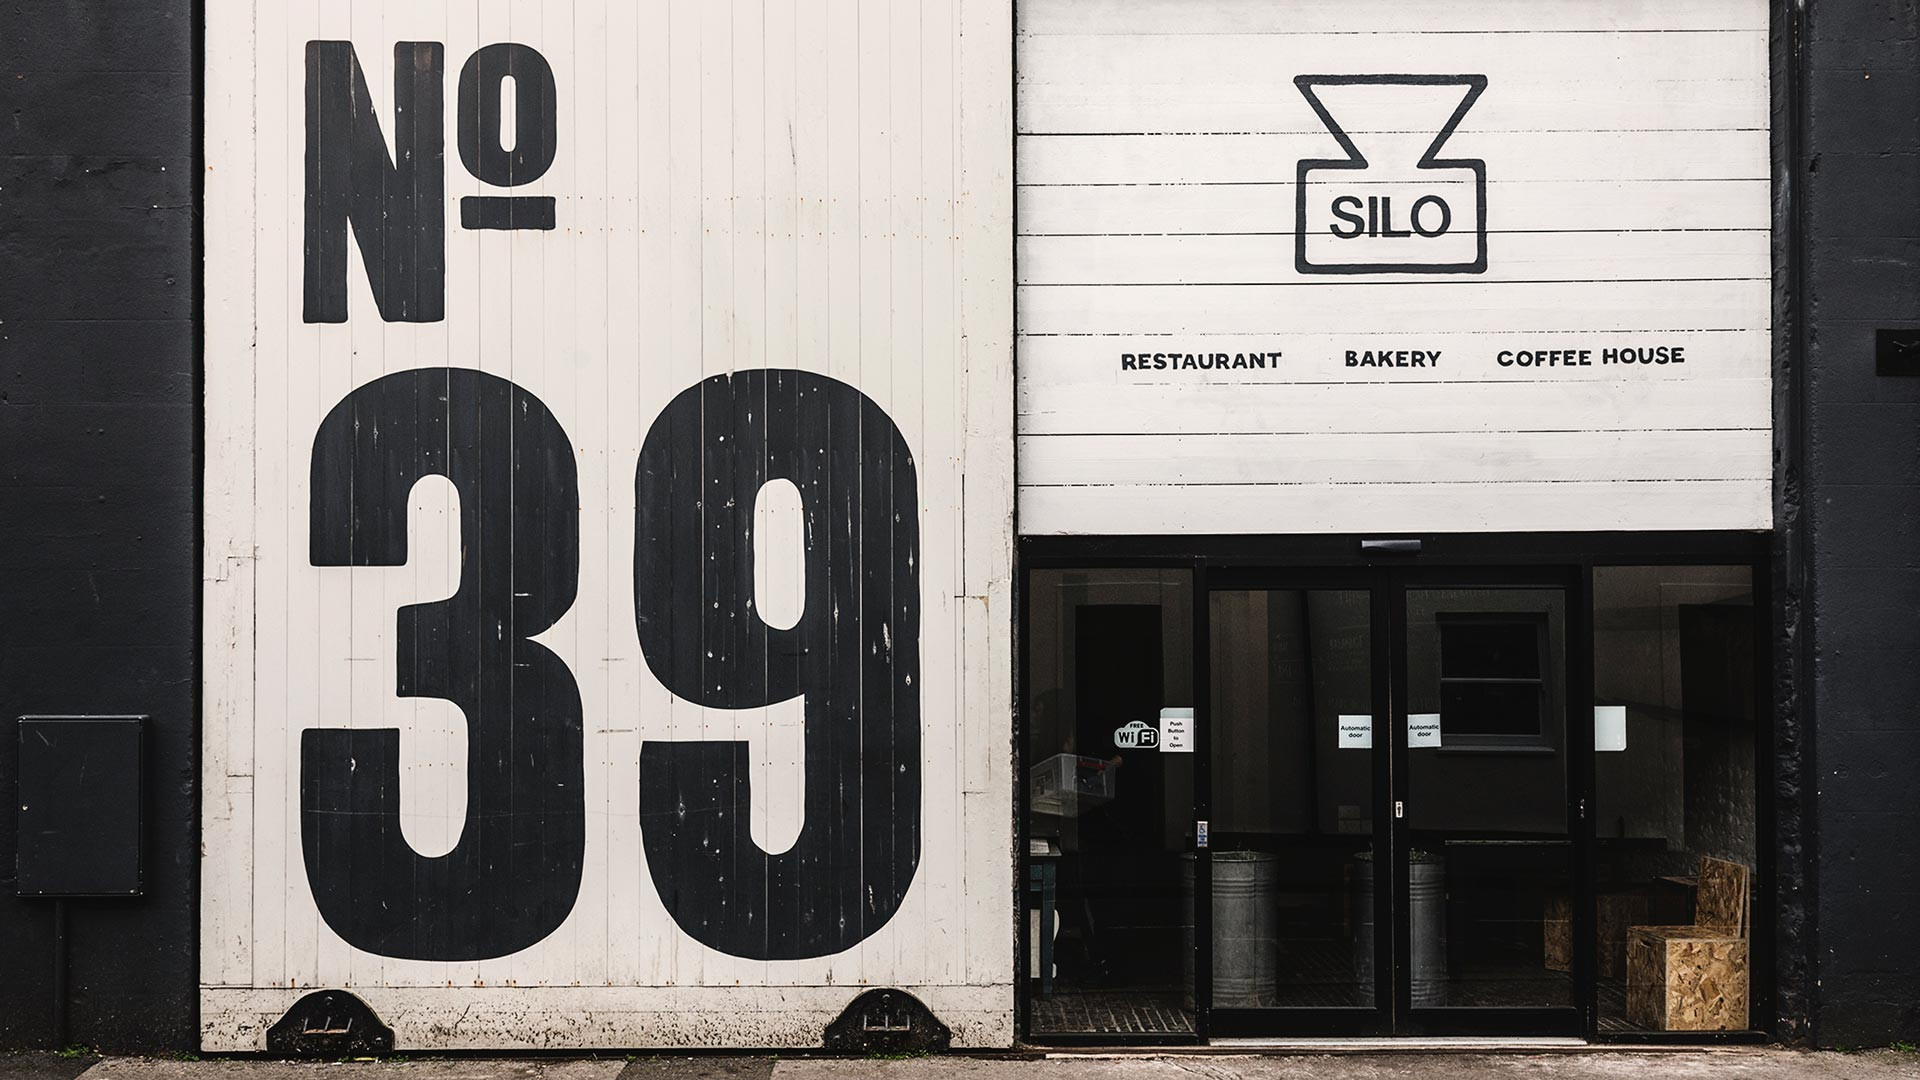 Silo in Brighton was conceived as the UK's first fully zero waste eatery, from the ingredients used to the way it's been designed